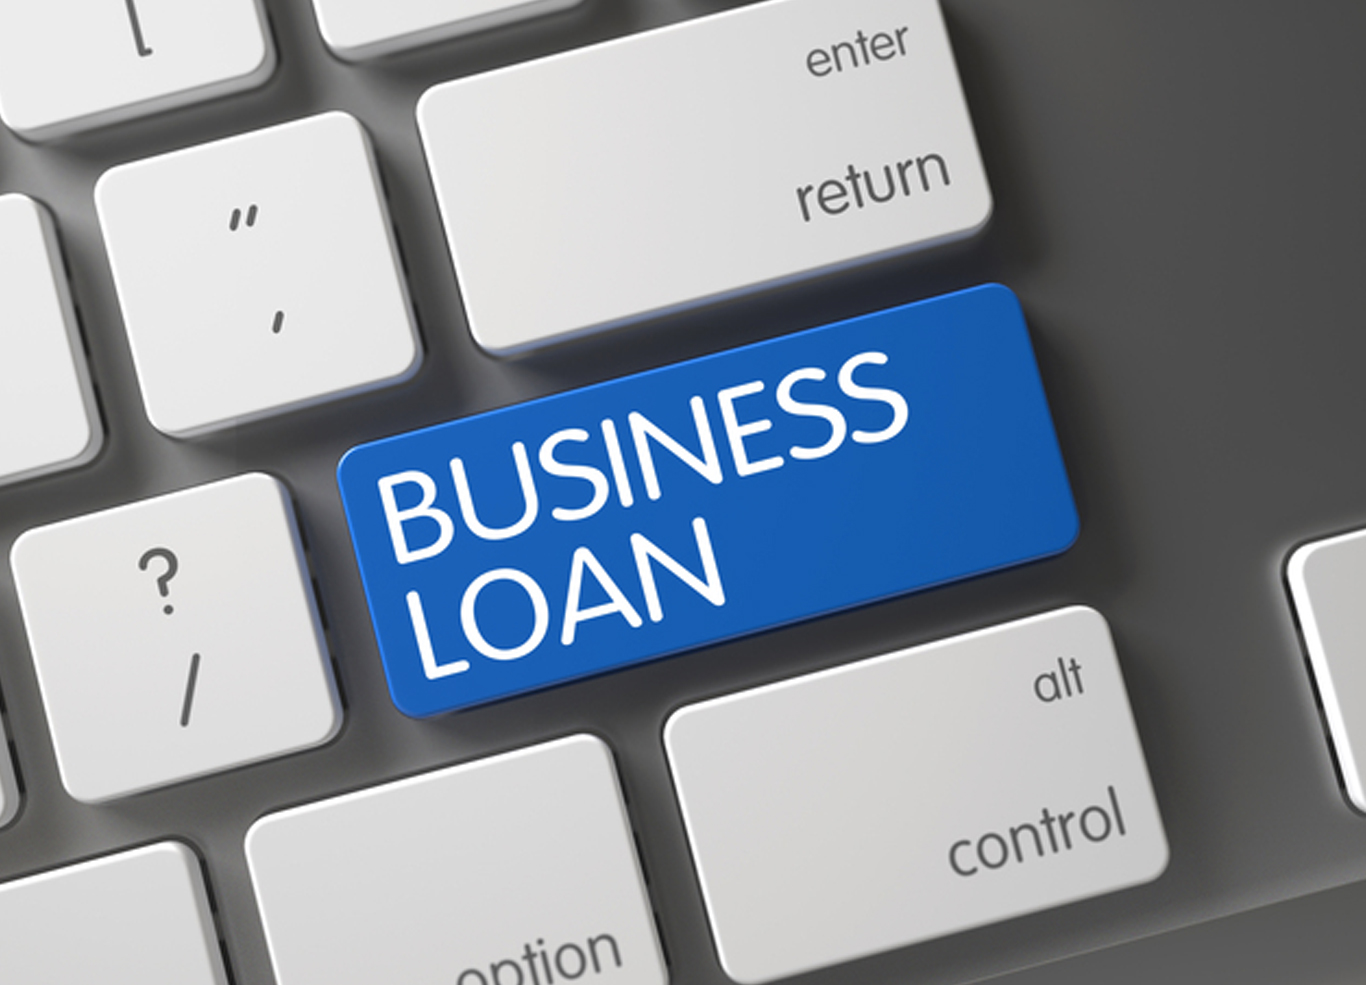 Do not hesitate to have small business loans through this company